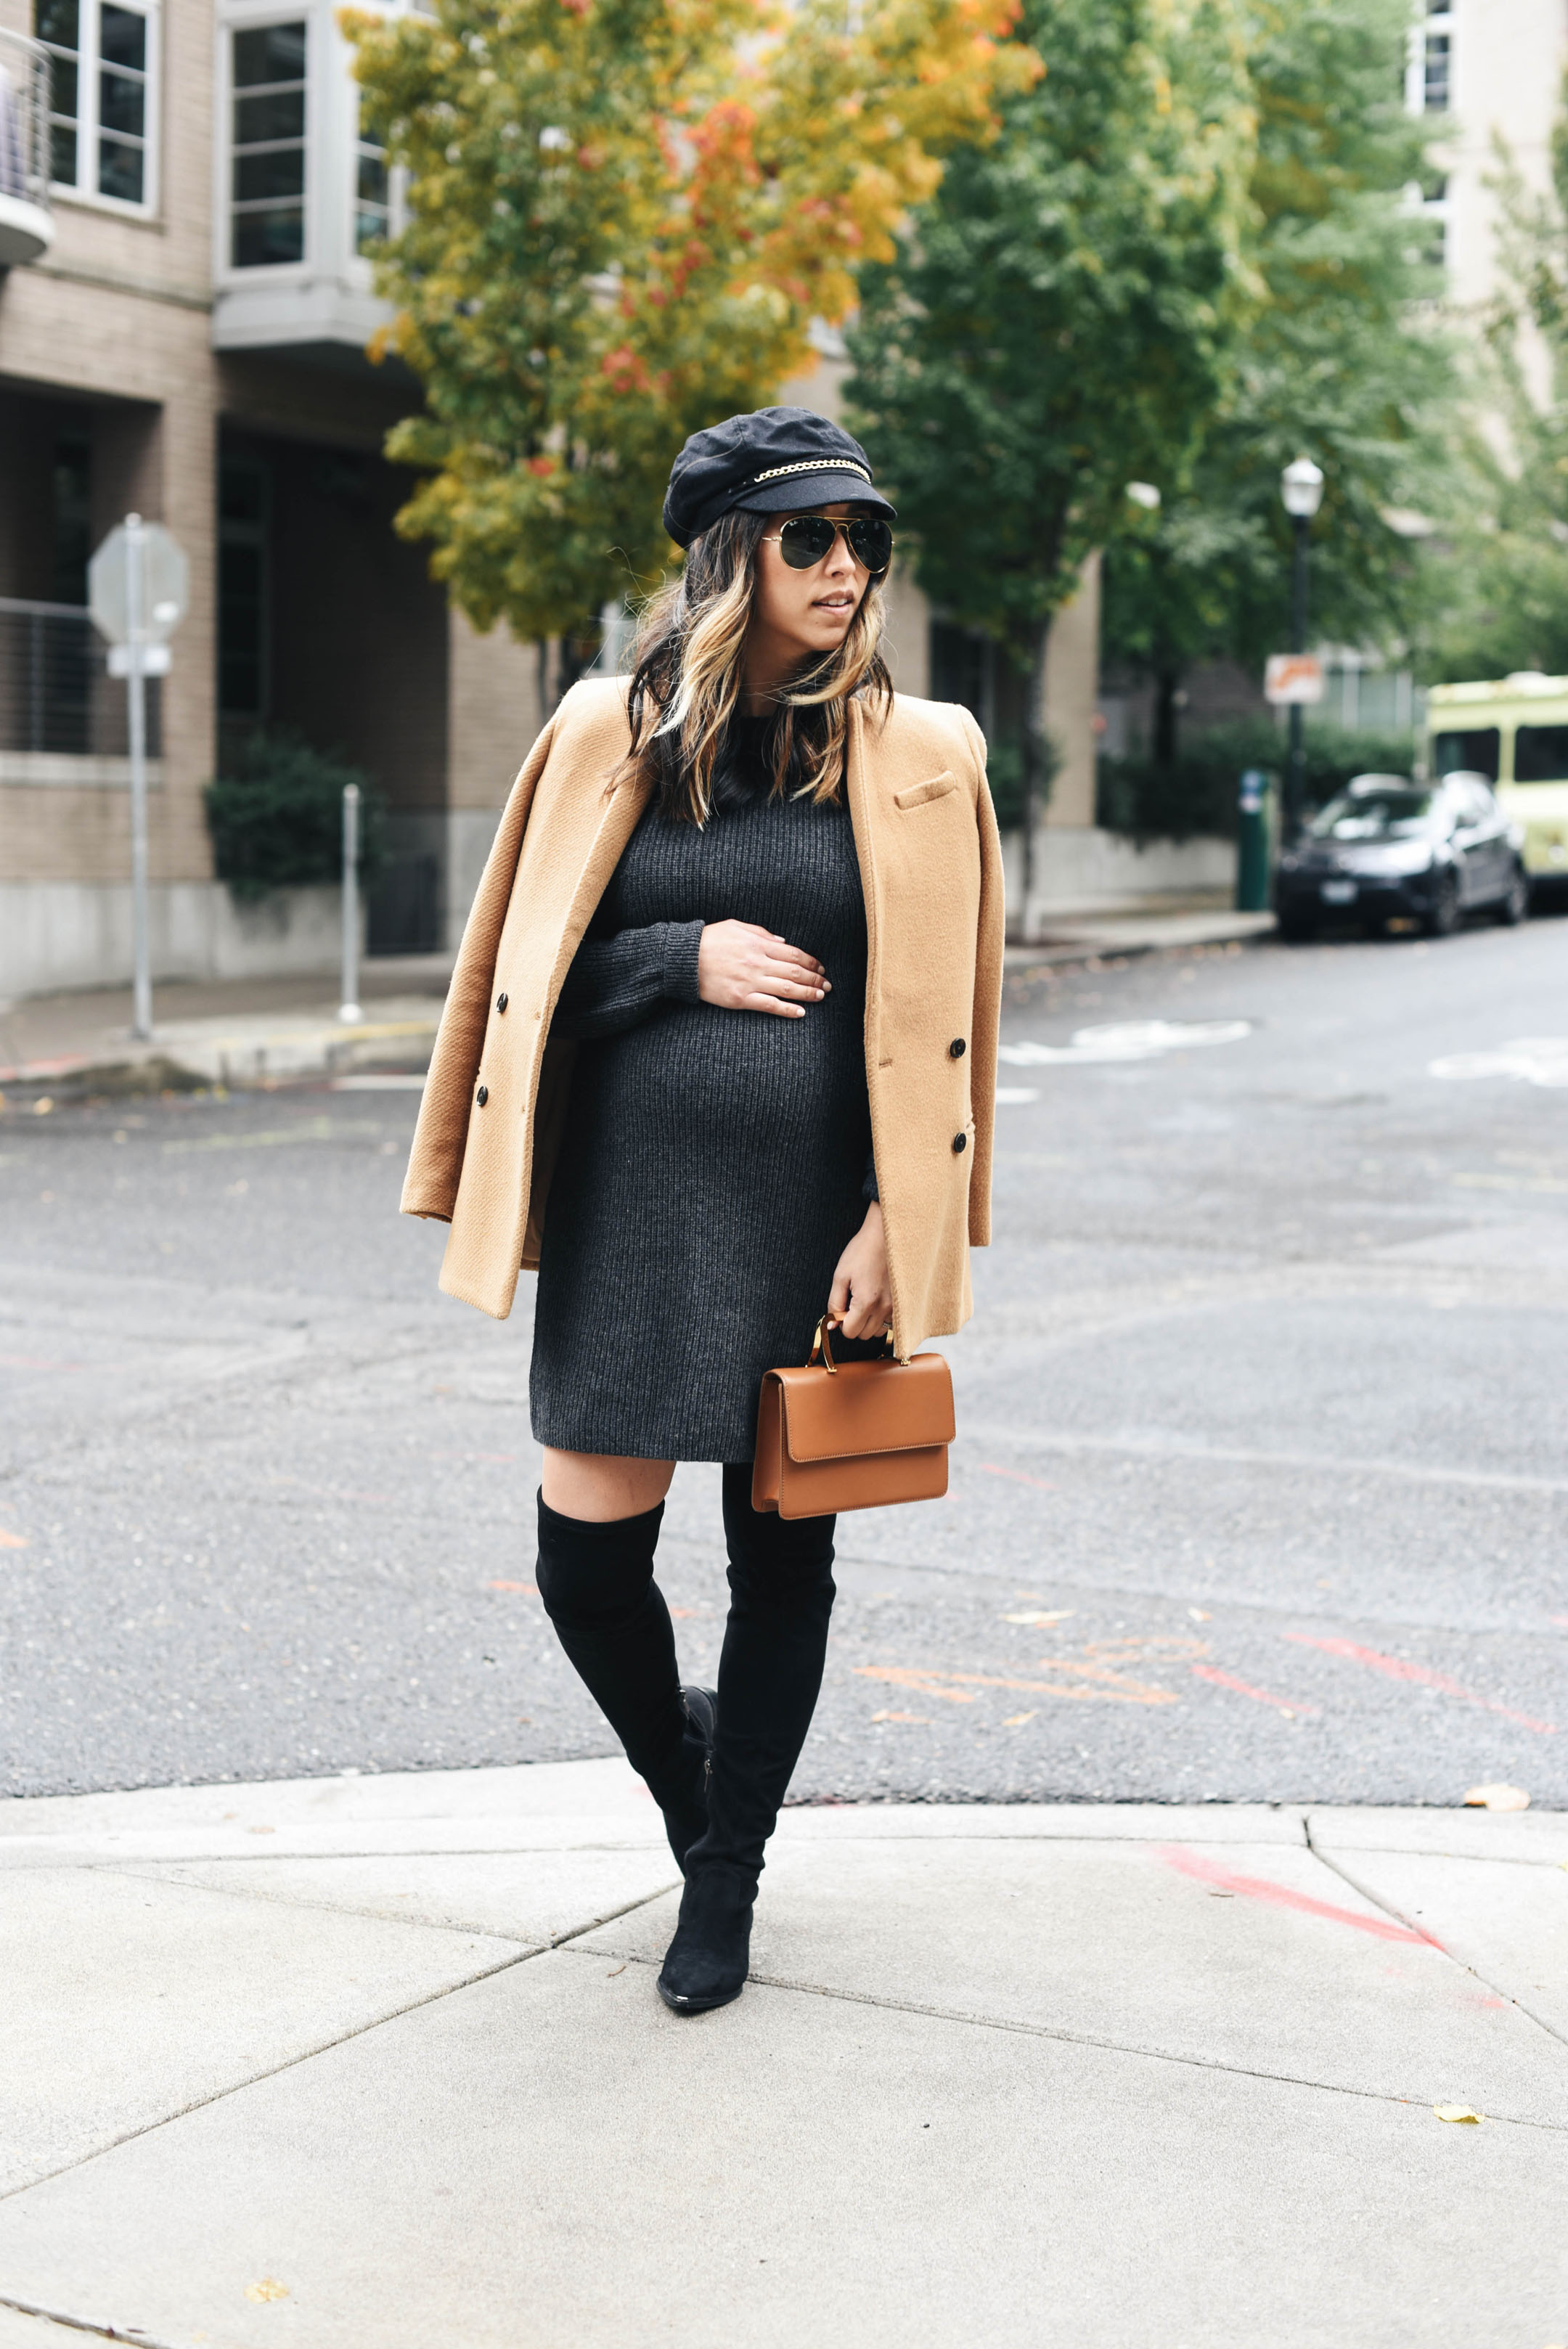 The Best Black Friday Sales Outfits On Sale Crystalin